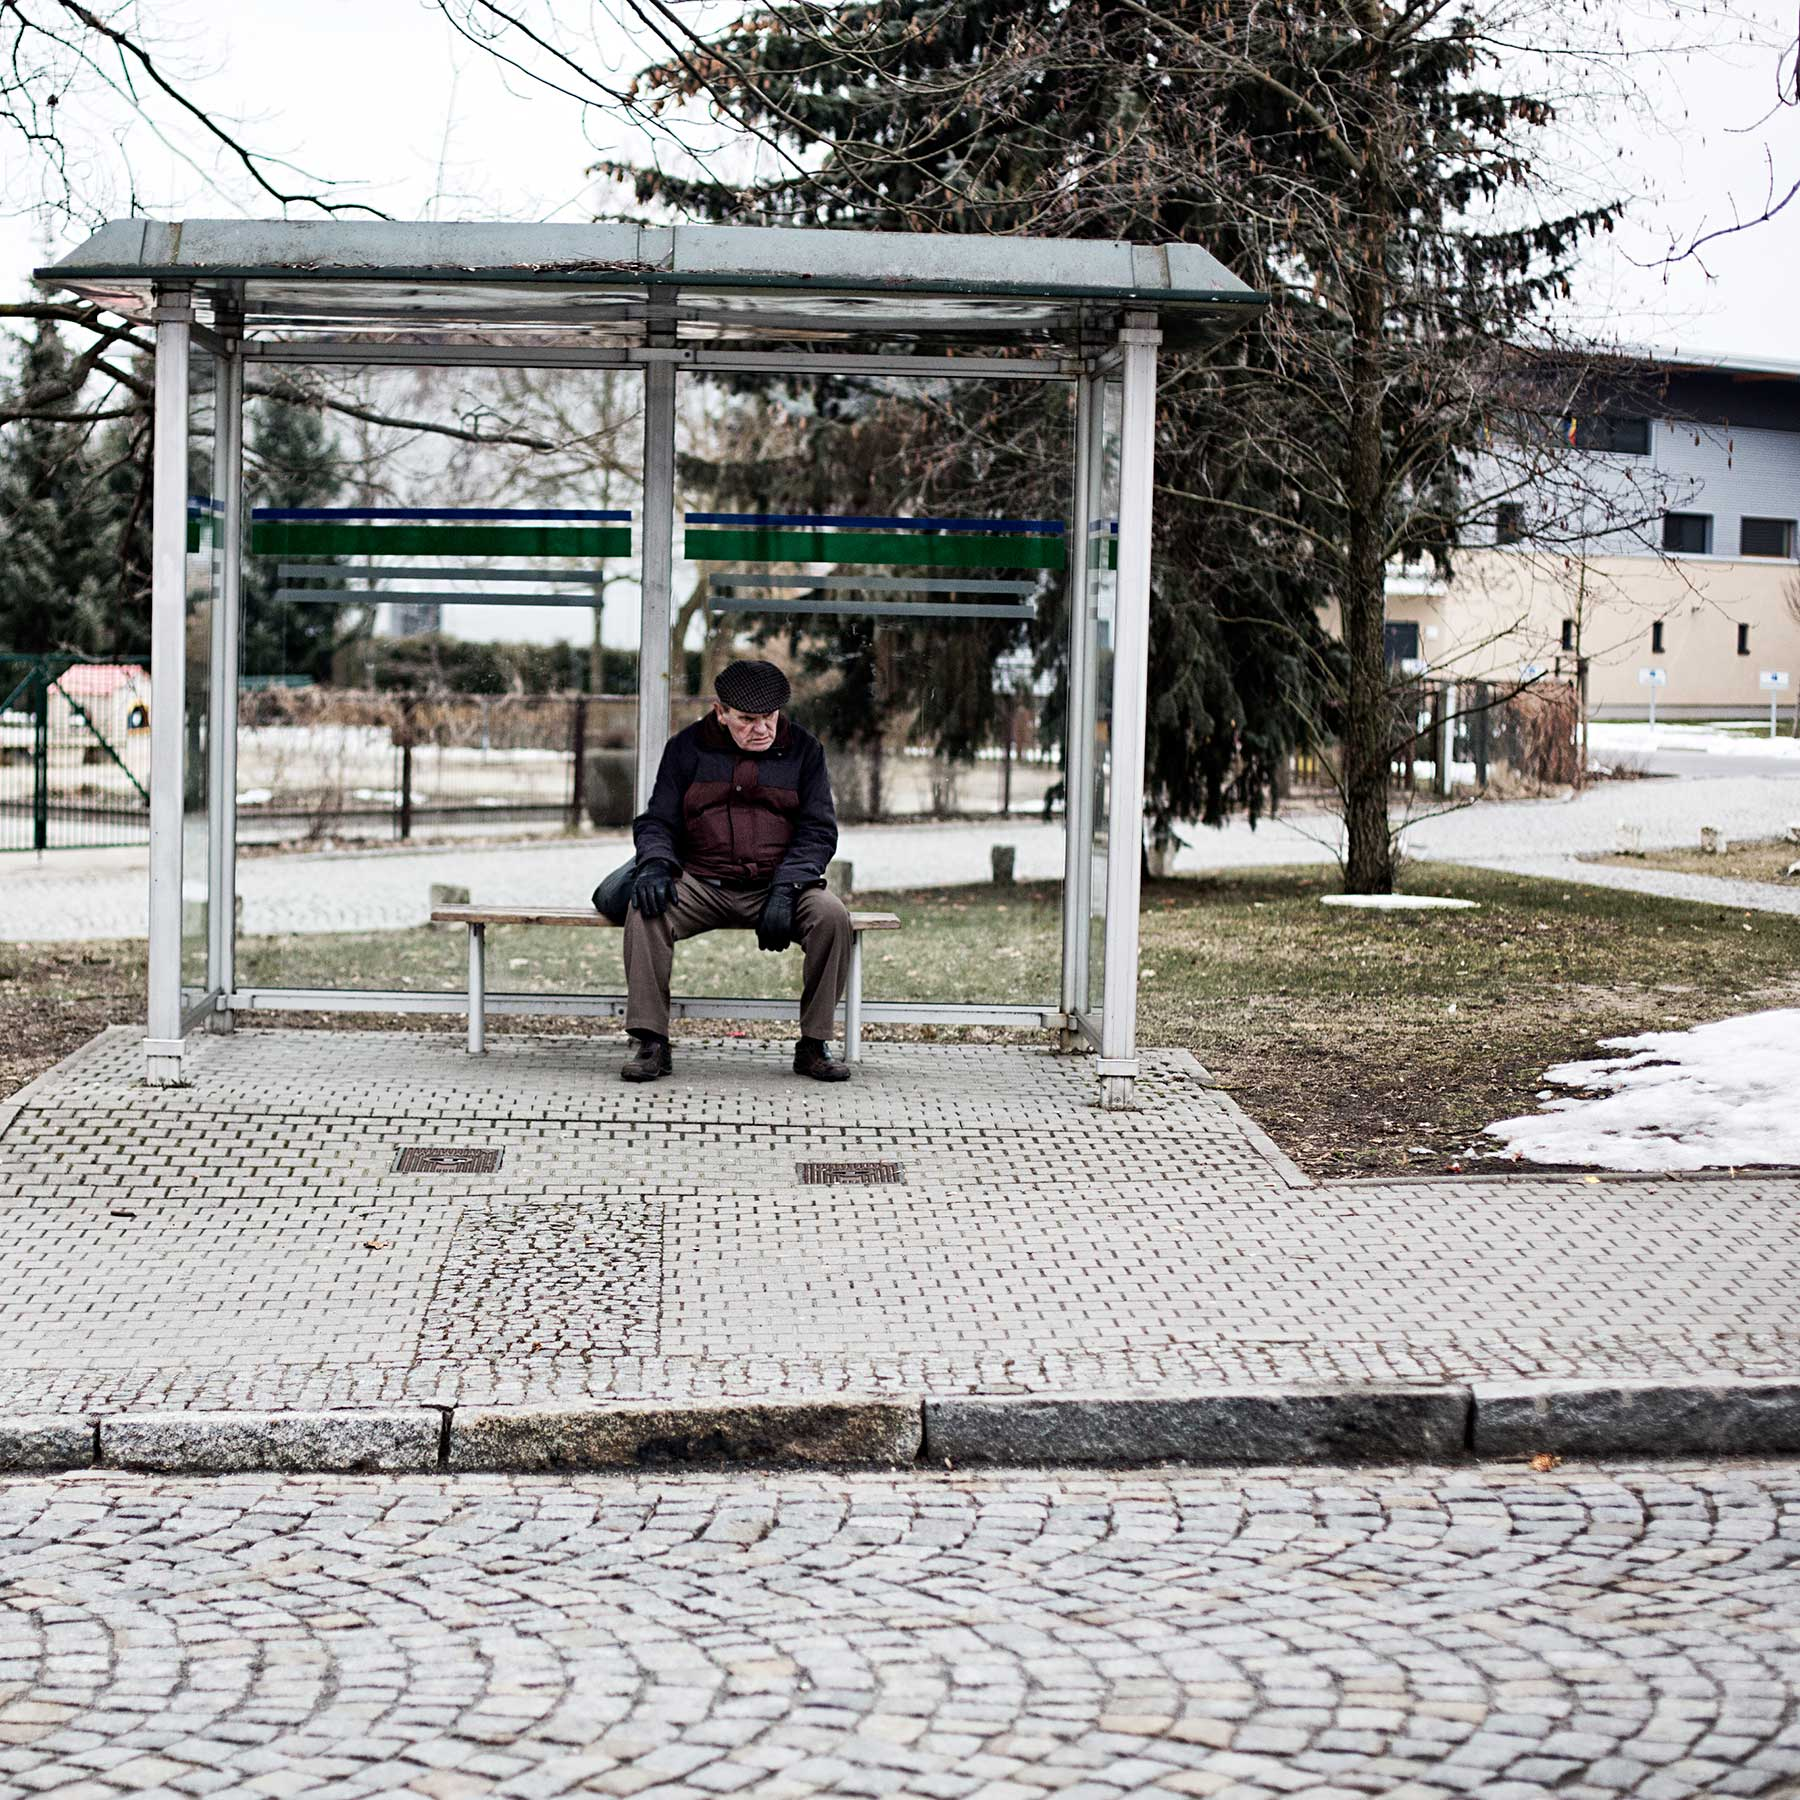 The average population age for Hoyerswerda is 54. Social services and funding are gear towards the aging population causing a strain on services for the younger population thus forcing students to move to nearby cities like Berlin and Dresden for opportunities.